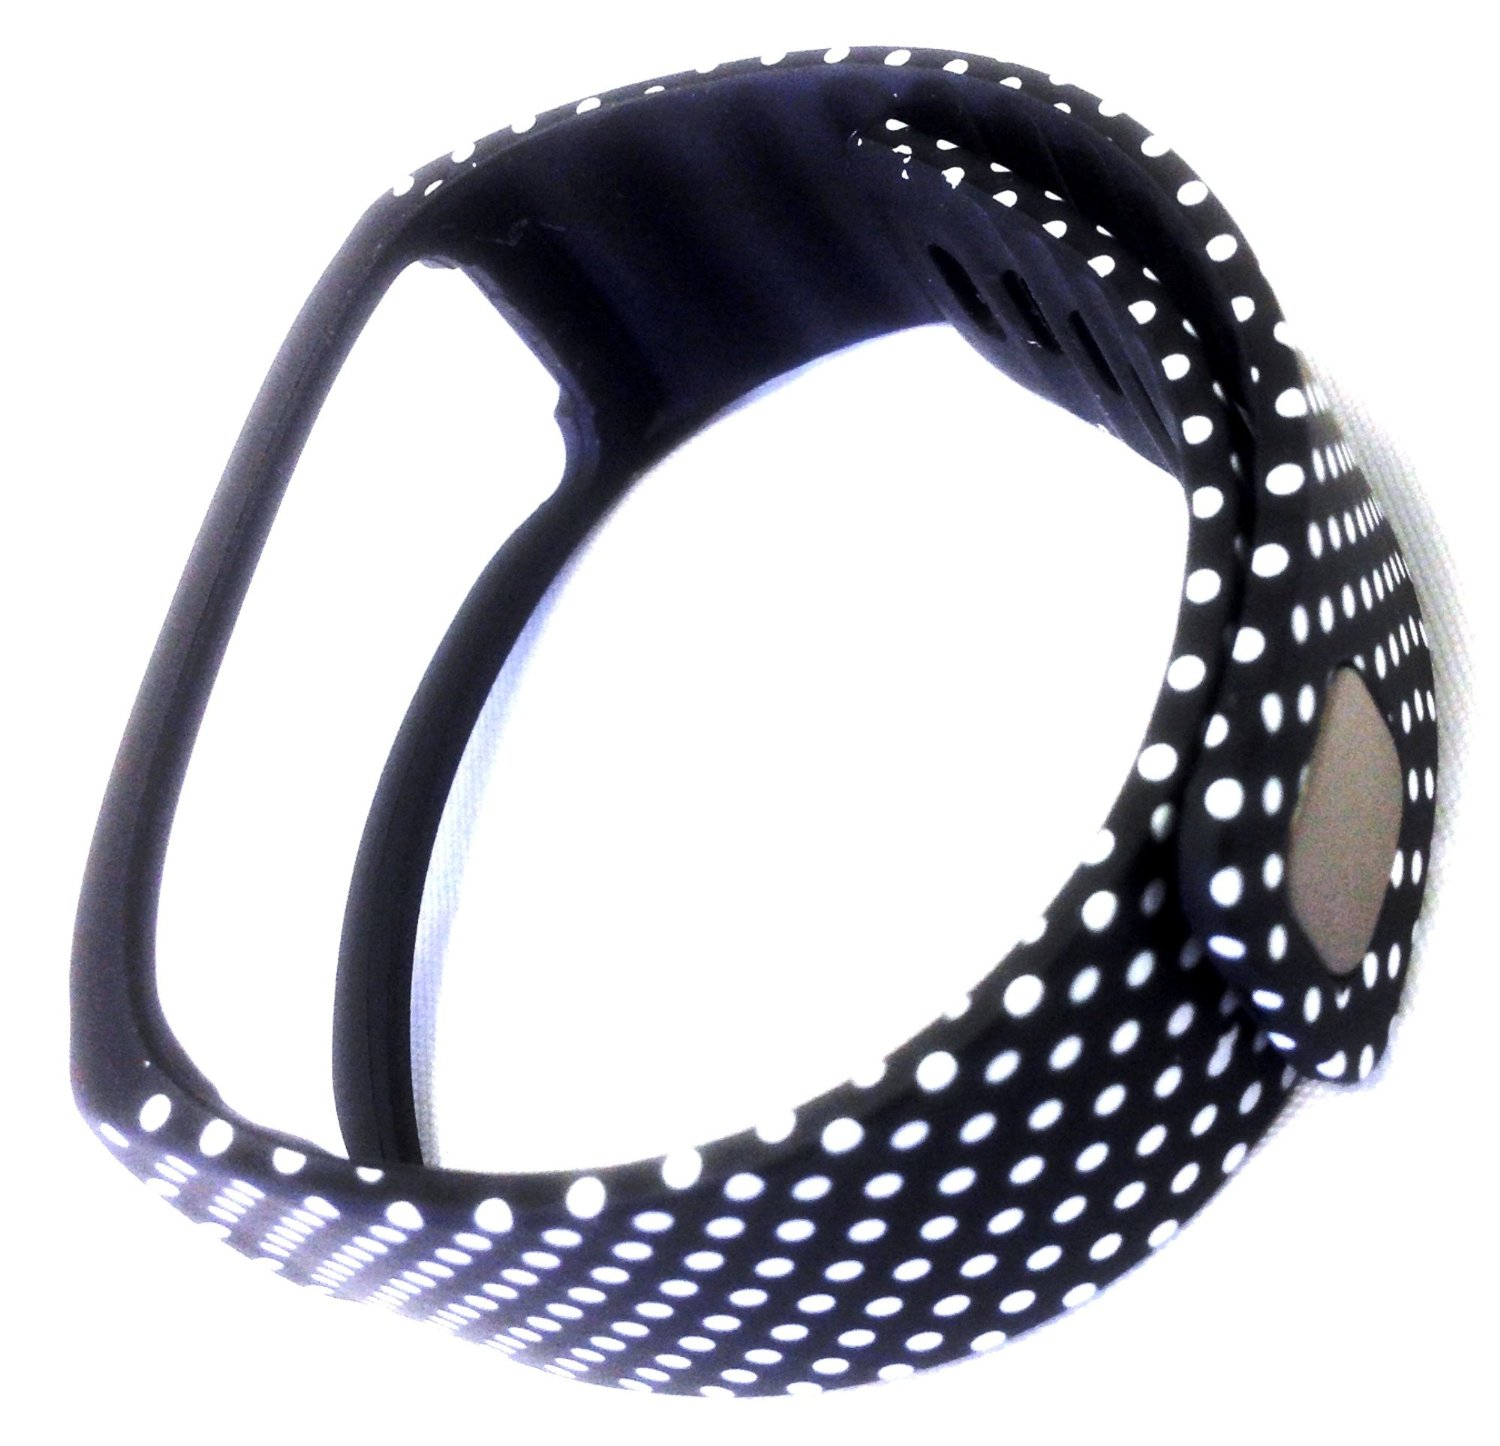 1pc Replacement Black with White Dots Spots Band & Metal Clasp For Samsung Galaxy Gear Fit Bracelet Smart Wristband Wireless Activity Bracelet Sport Bracelet Sport Arm Band Armband